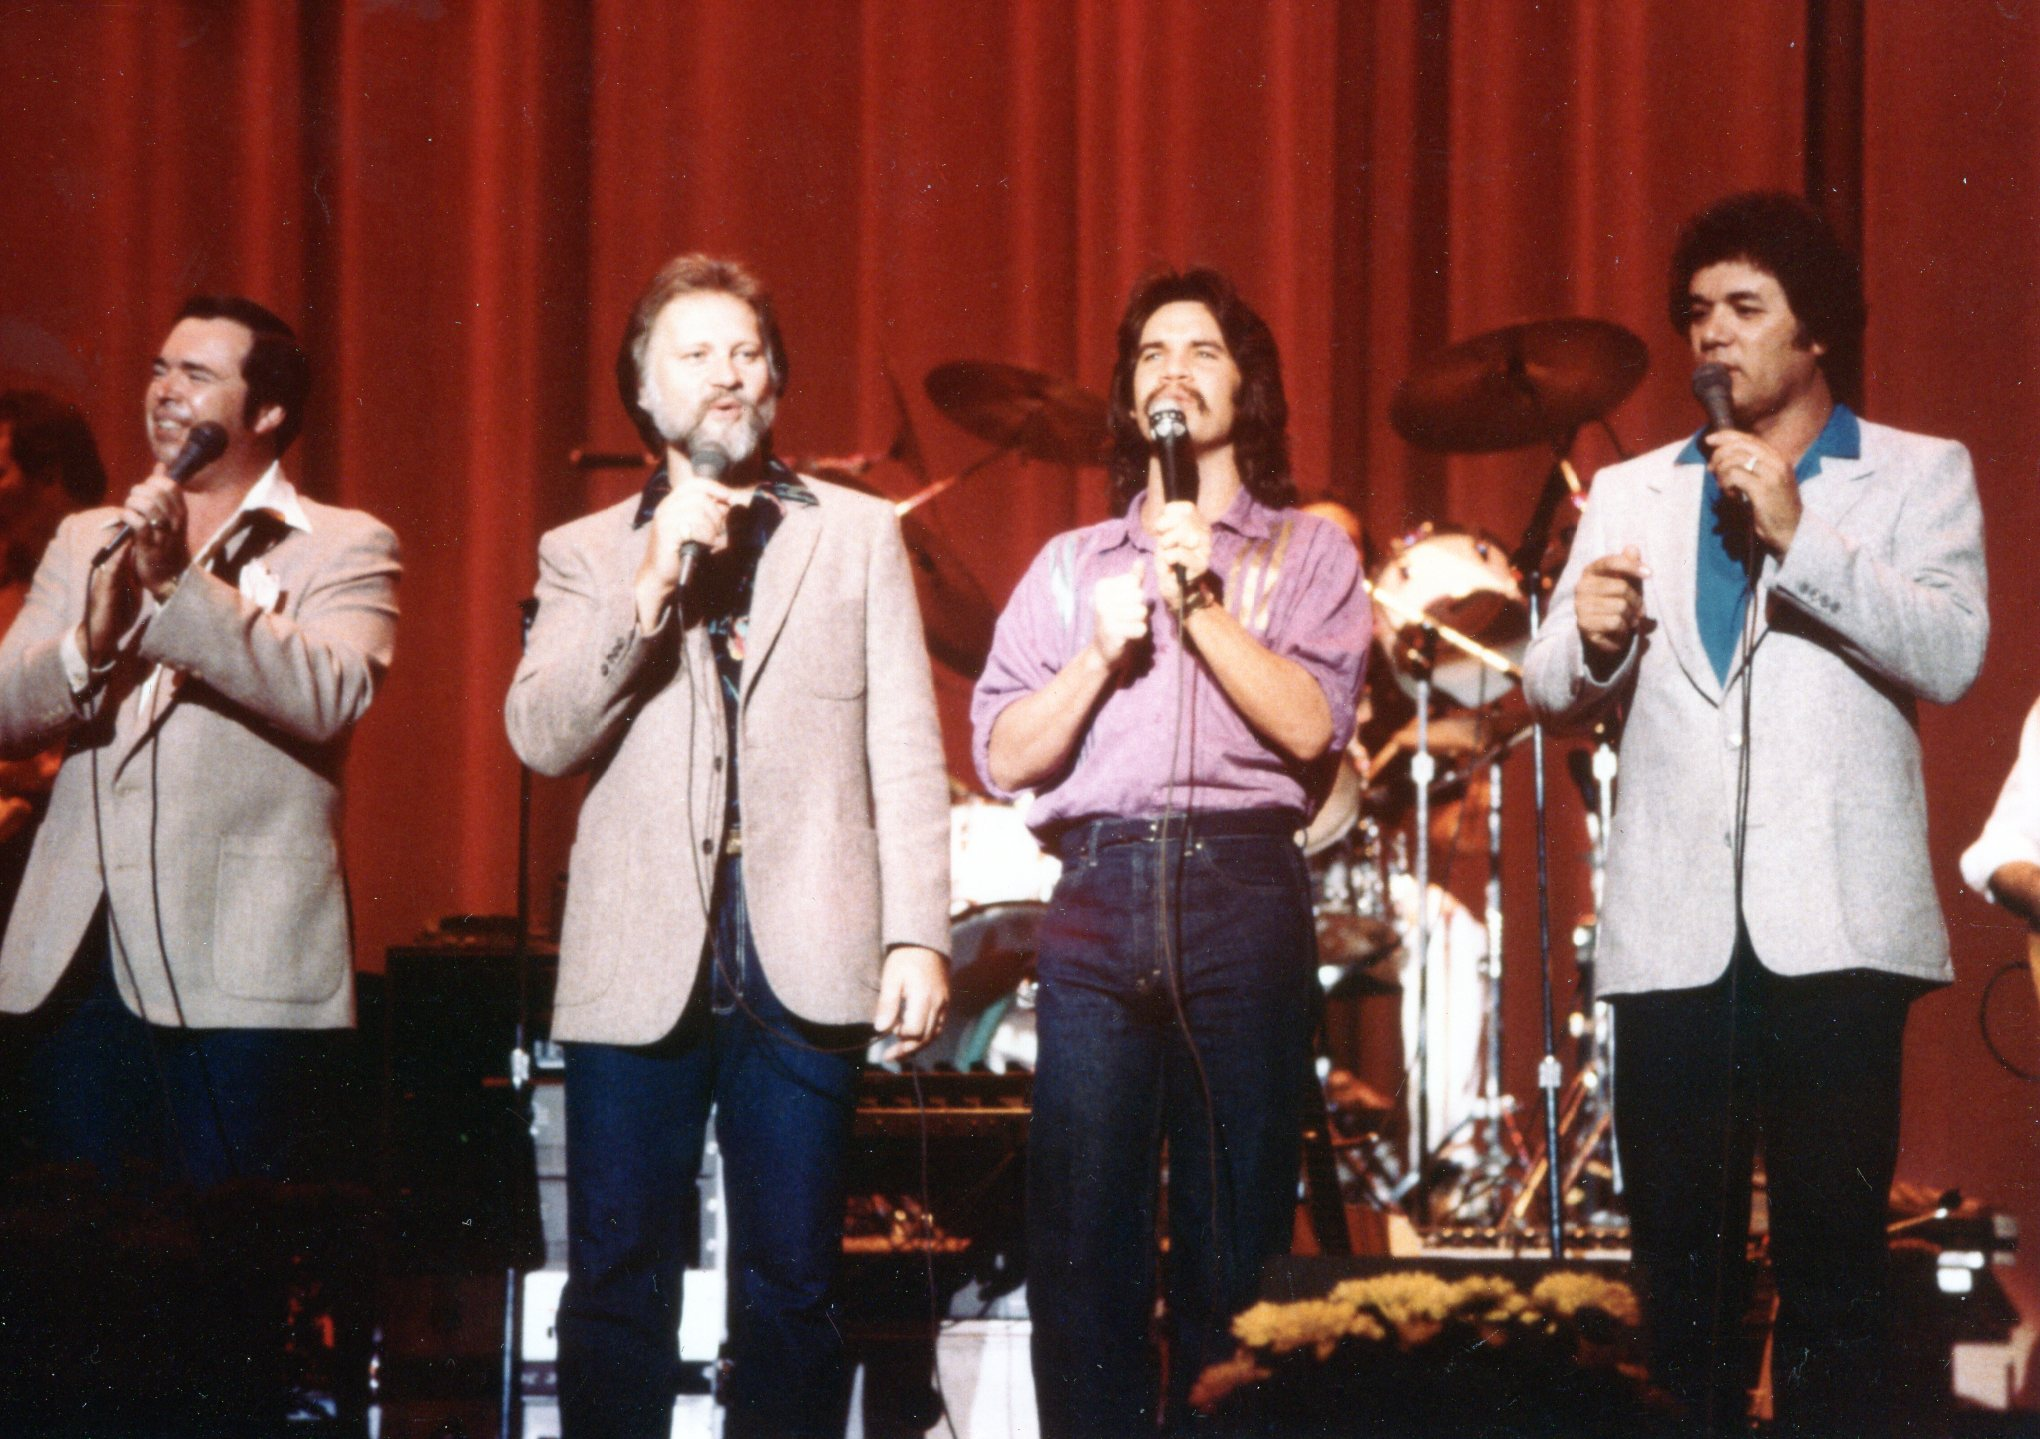 Russ Taff with the Imperials